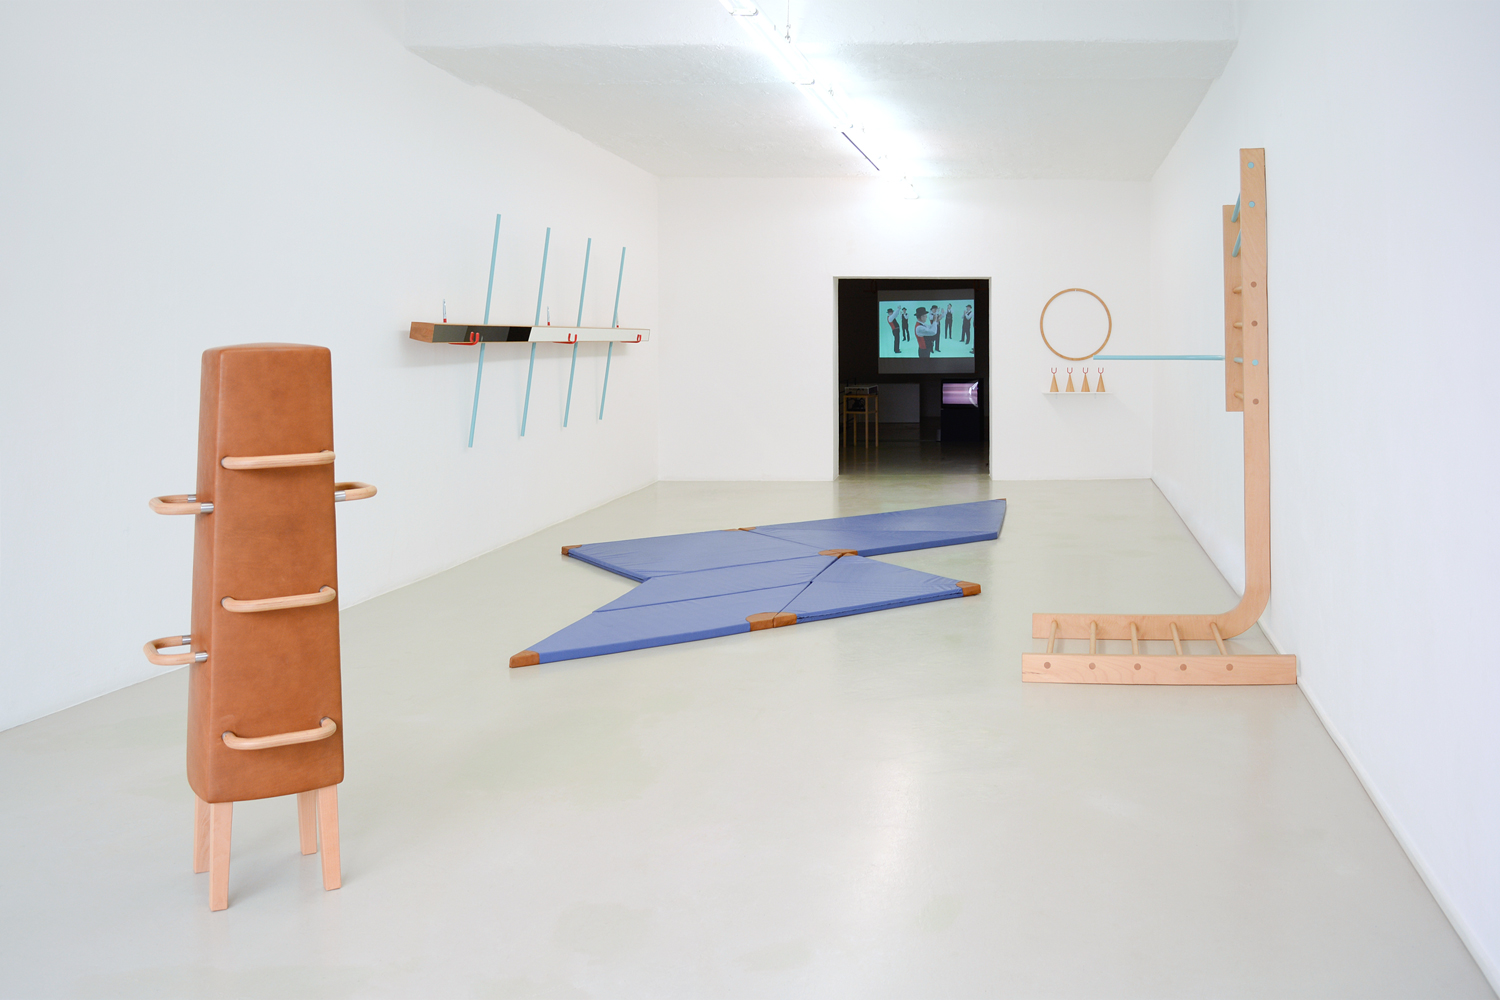 Ingrid Hora, Der Grillentöter, exhibition view, 2015, photo by aneres